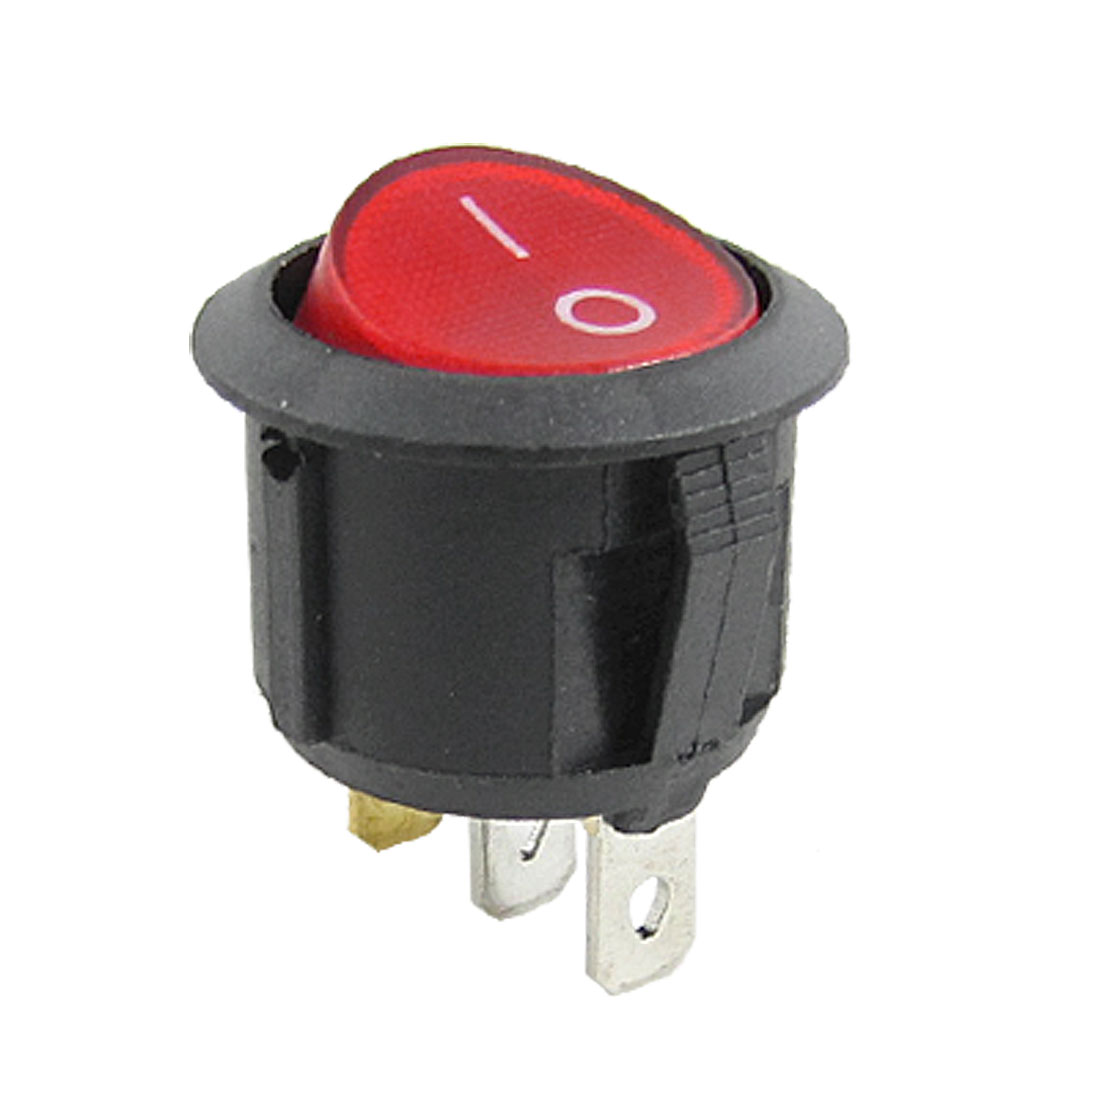 AC 250V 10A Red Light Illuminated 3 Pin ON-OFF SPST Snap in Round Rocker Switch